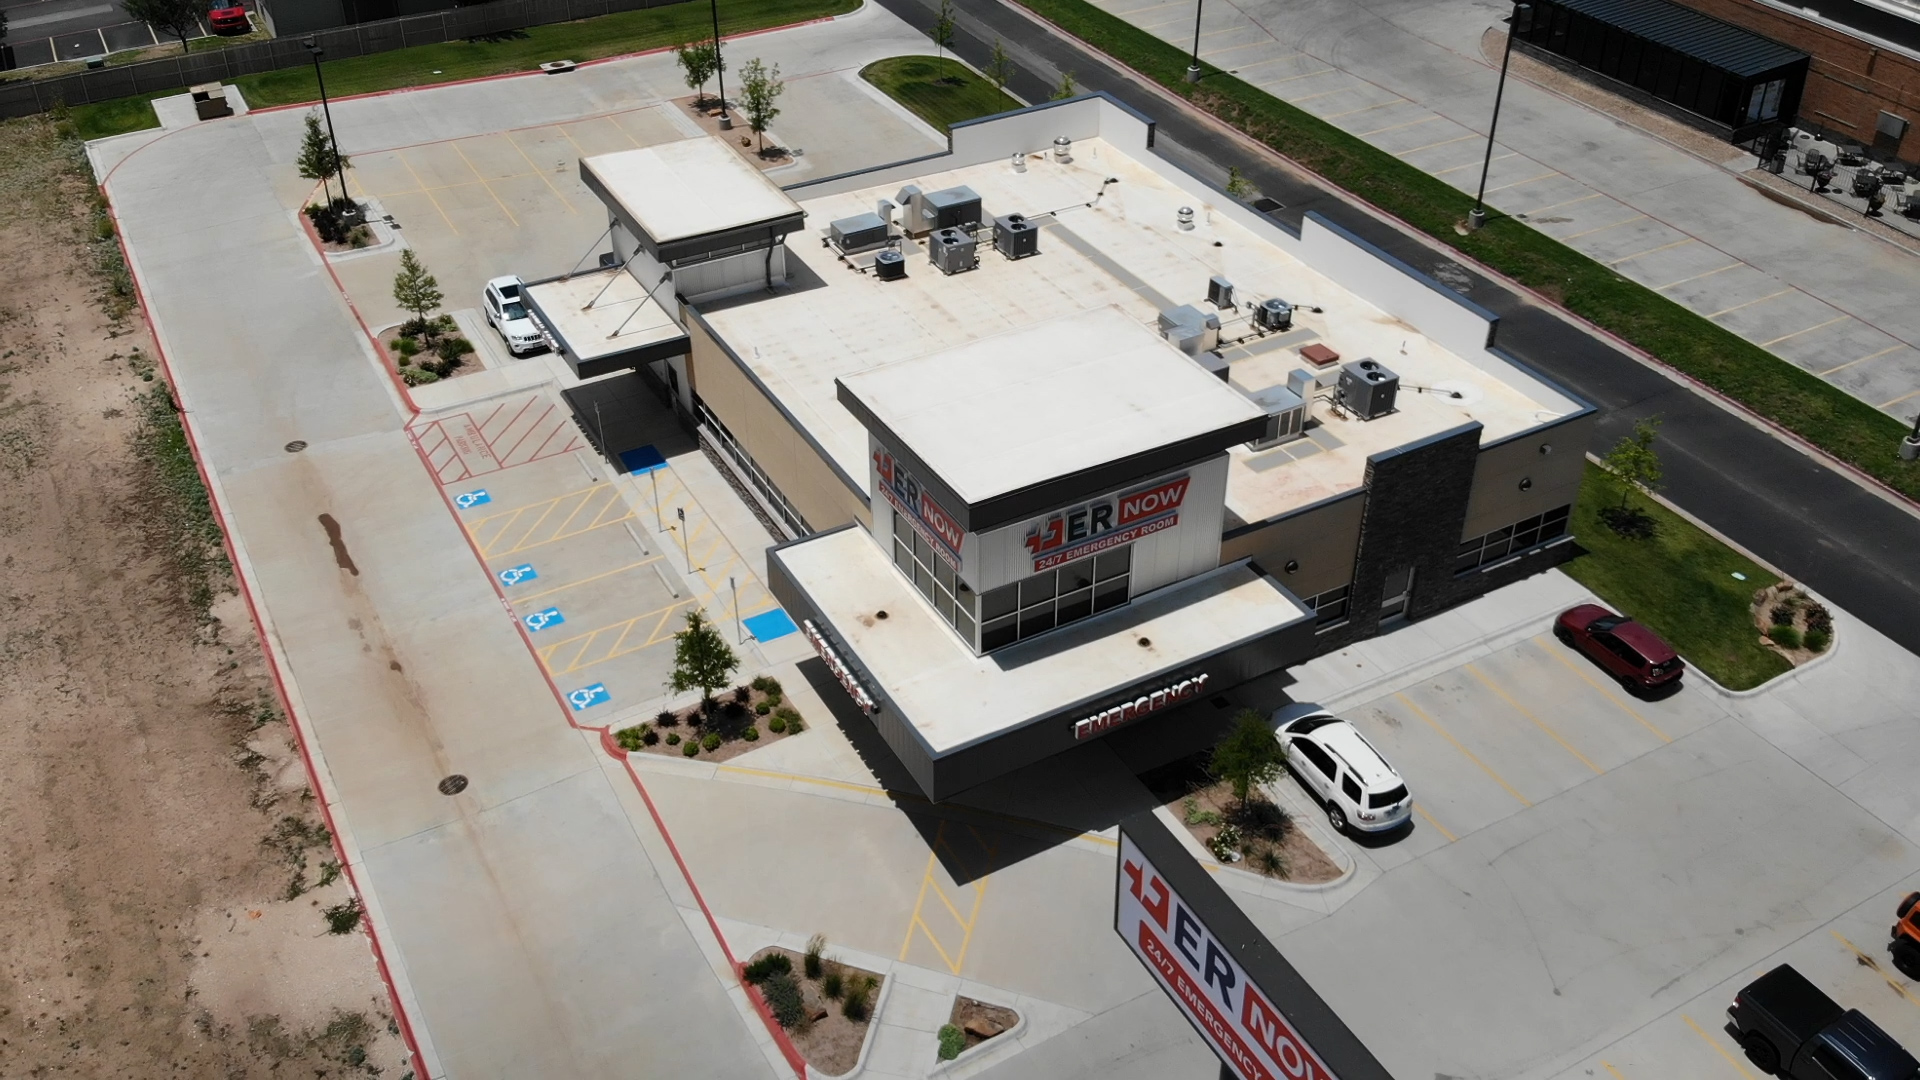 er now drone shot of roof and parking lot